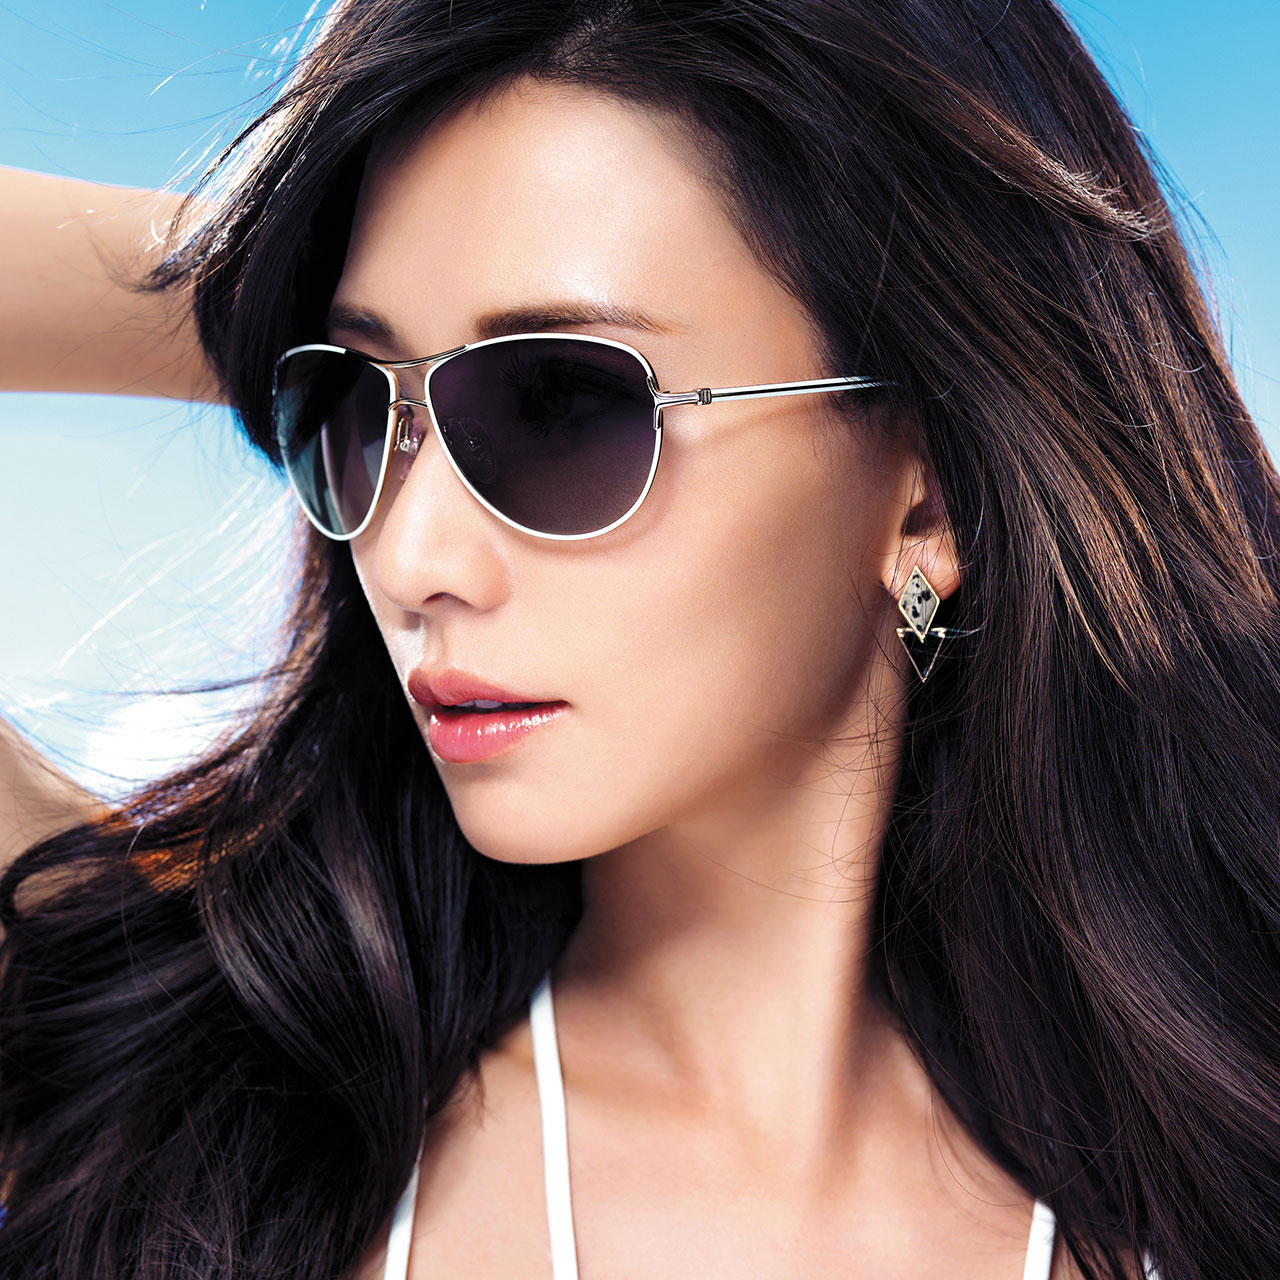 c90412c2aba Get Quotations · Helen keller sunglasses new female personality influx of  people sunglasses driver polariscope white small round frame